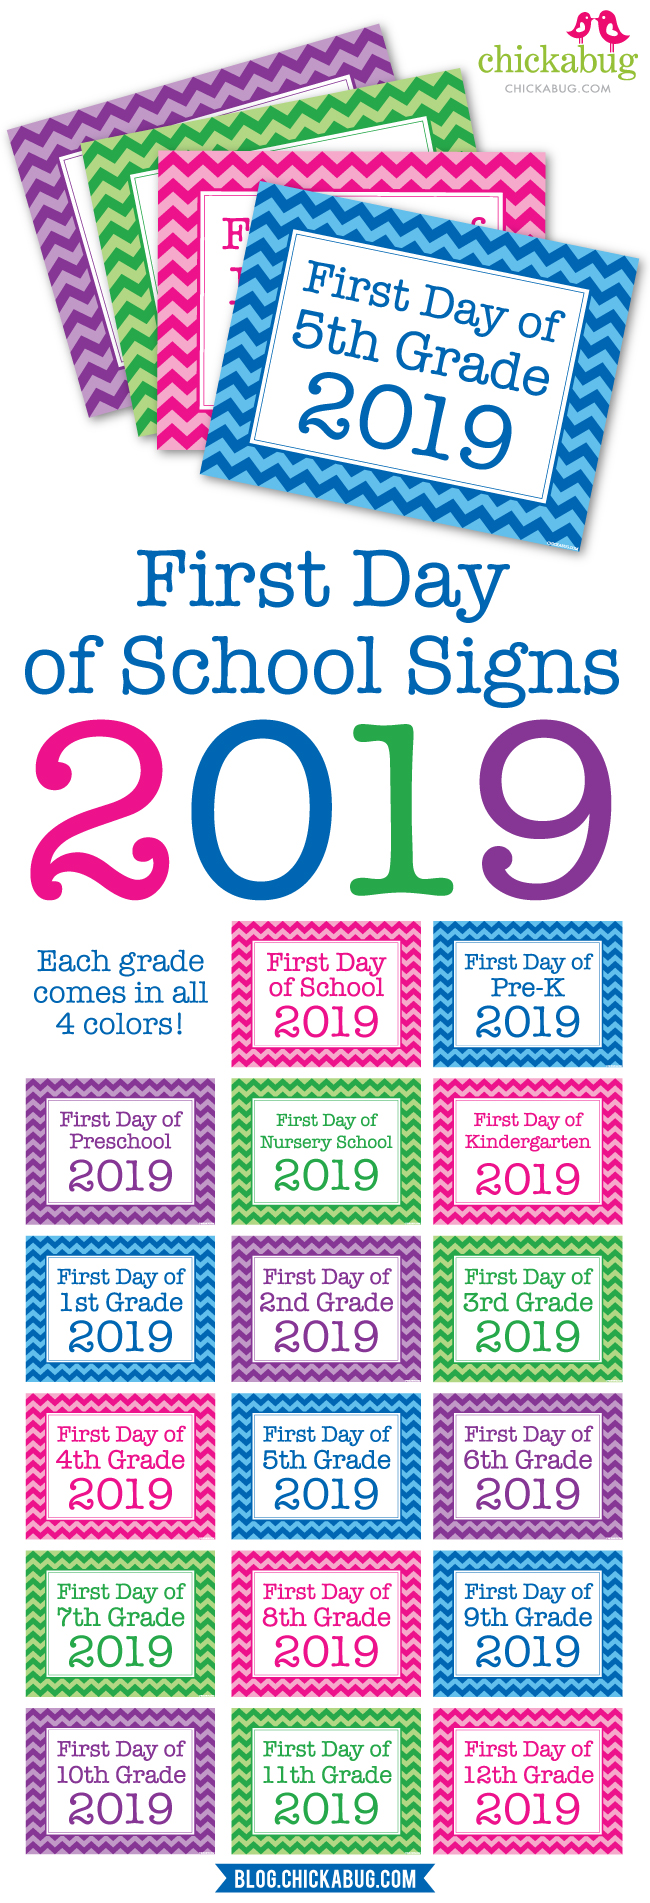 Free printable signs for the first day of school 2019